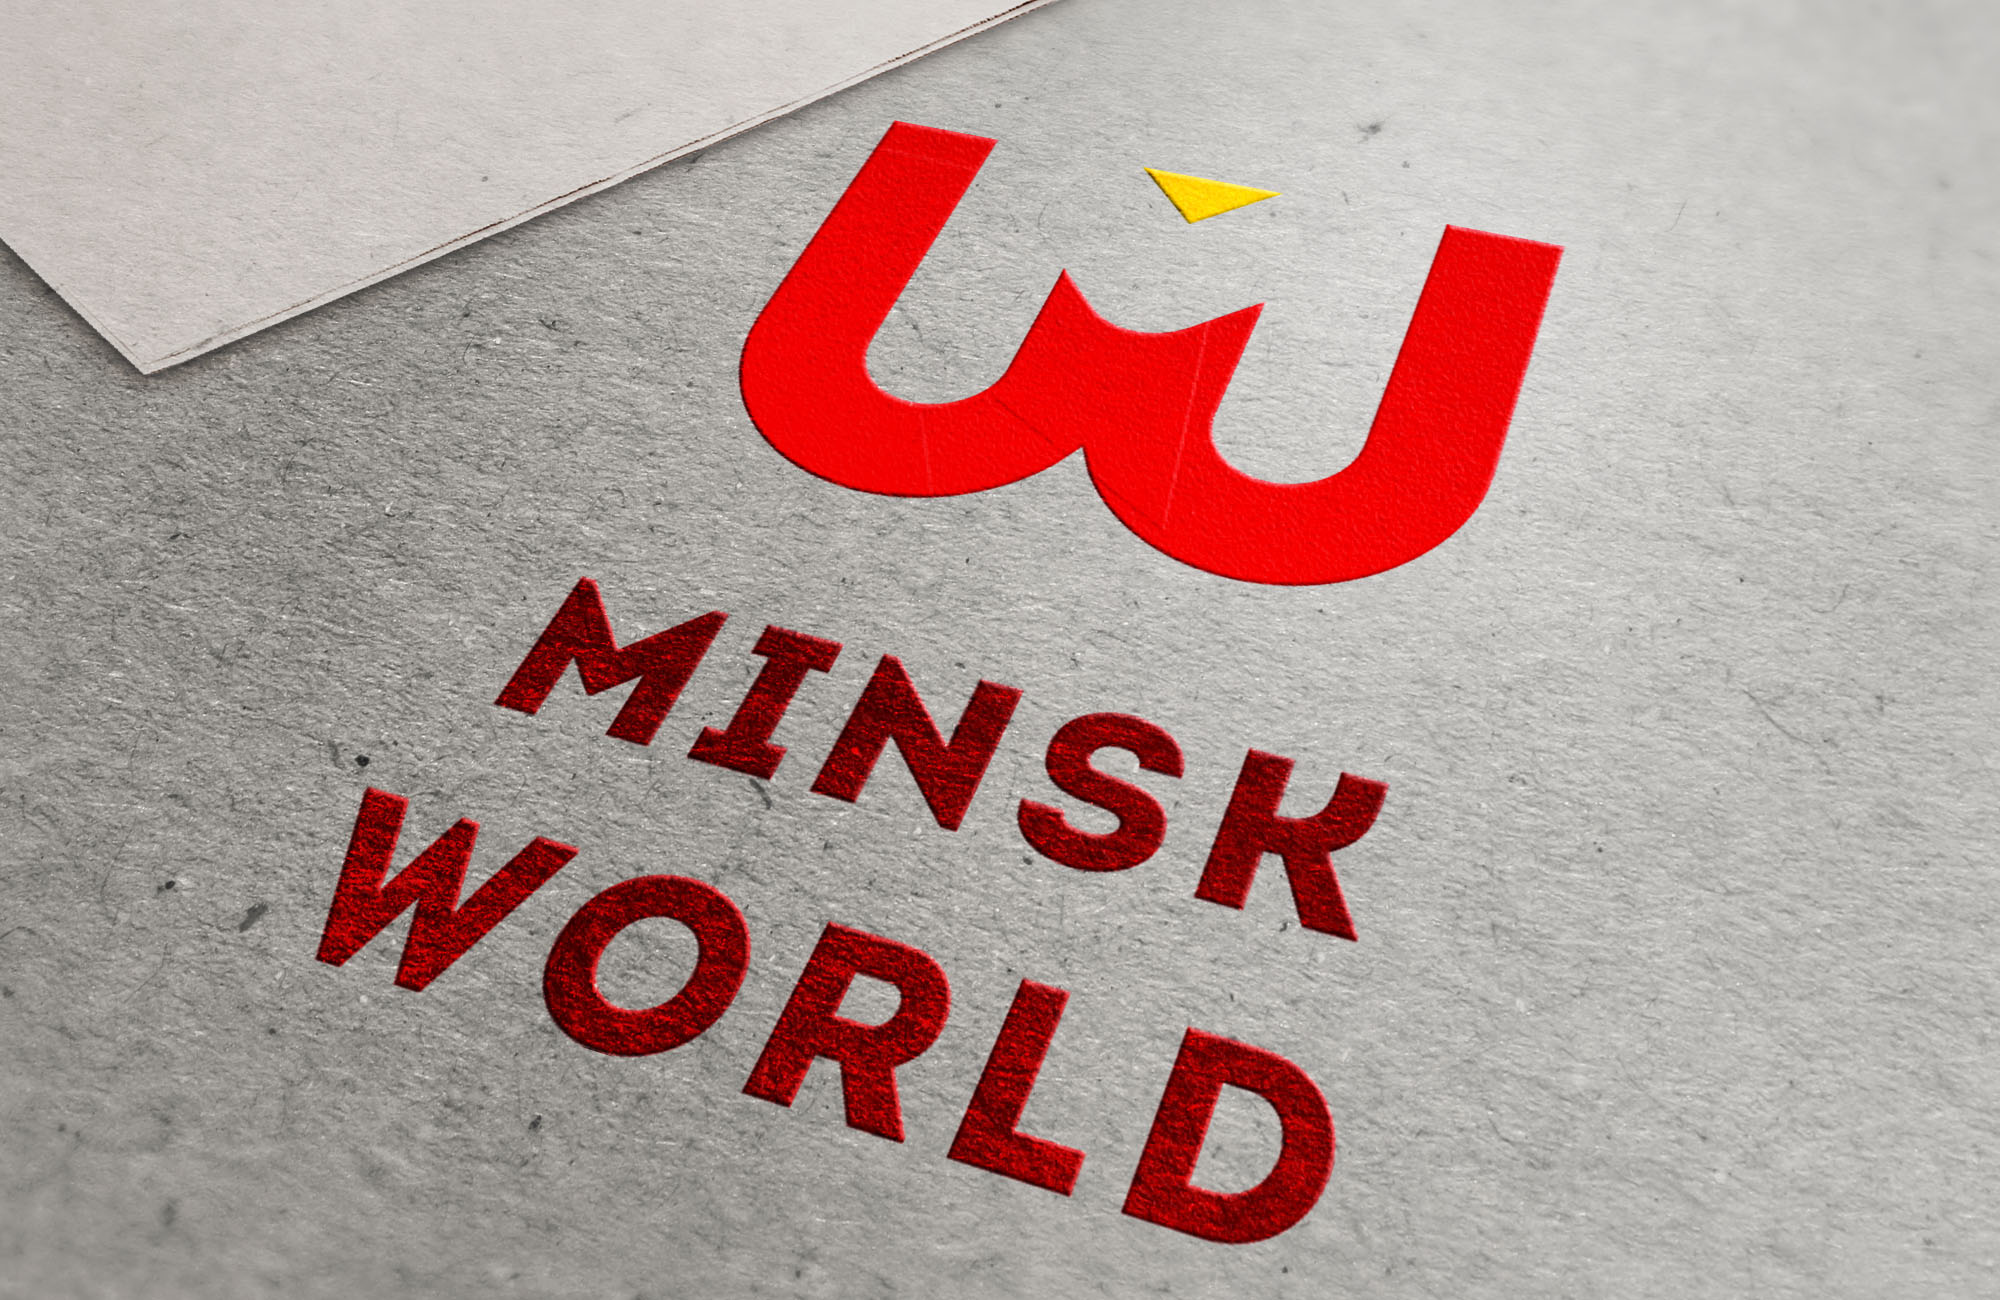 Minsk world 05